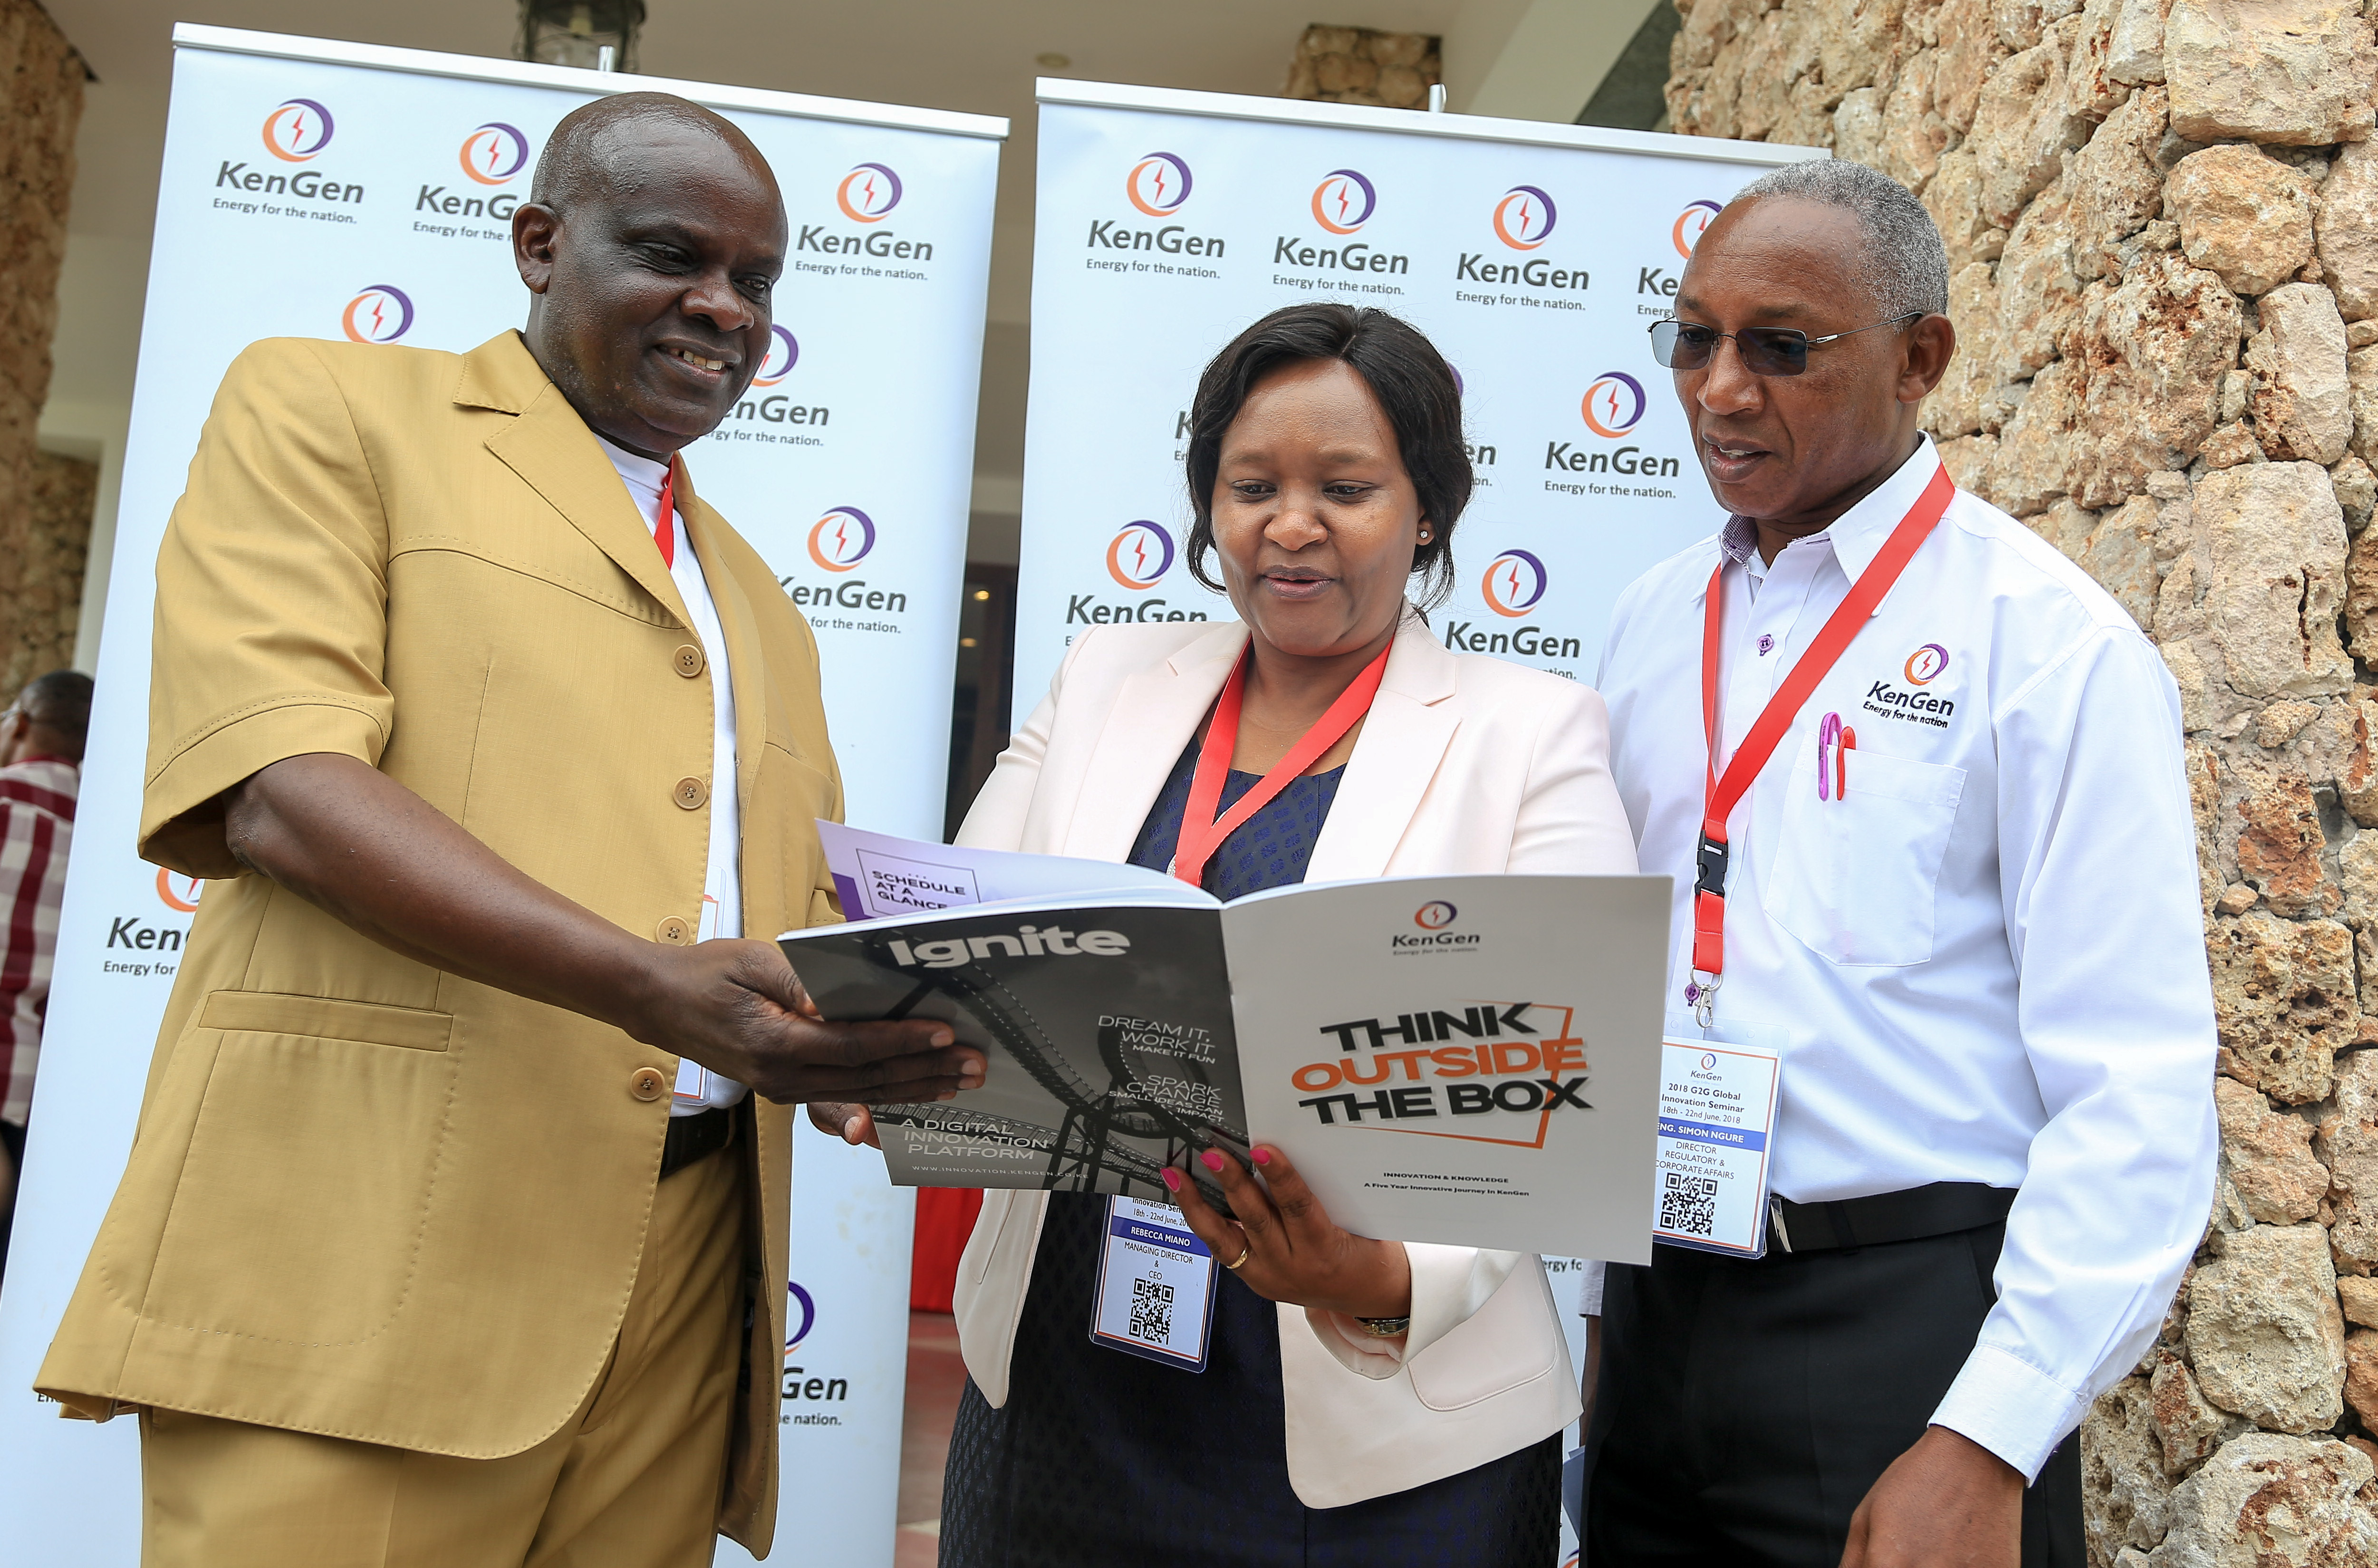 (Left to Right) KenGen Board of Directors Chairman, Joshua Choge, KenGen Managing Director, Rebecca Miano and KenGen's Regulatory and Corporate Affairs Director, Eng. Simon Ngure during the official opening of the firm's Global Innovation Summit in Mombasa.